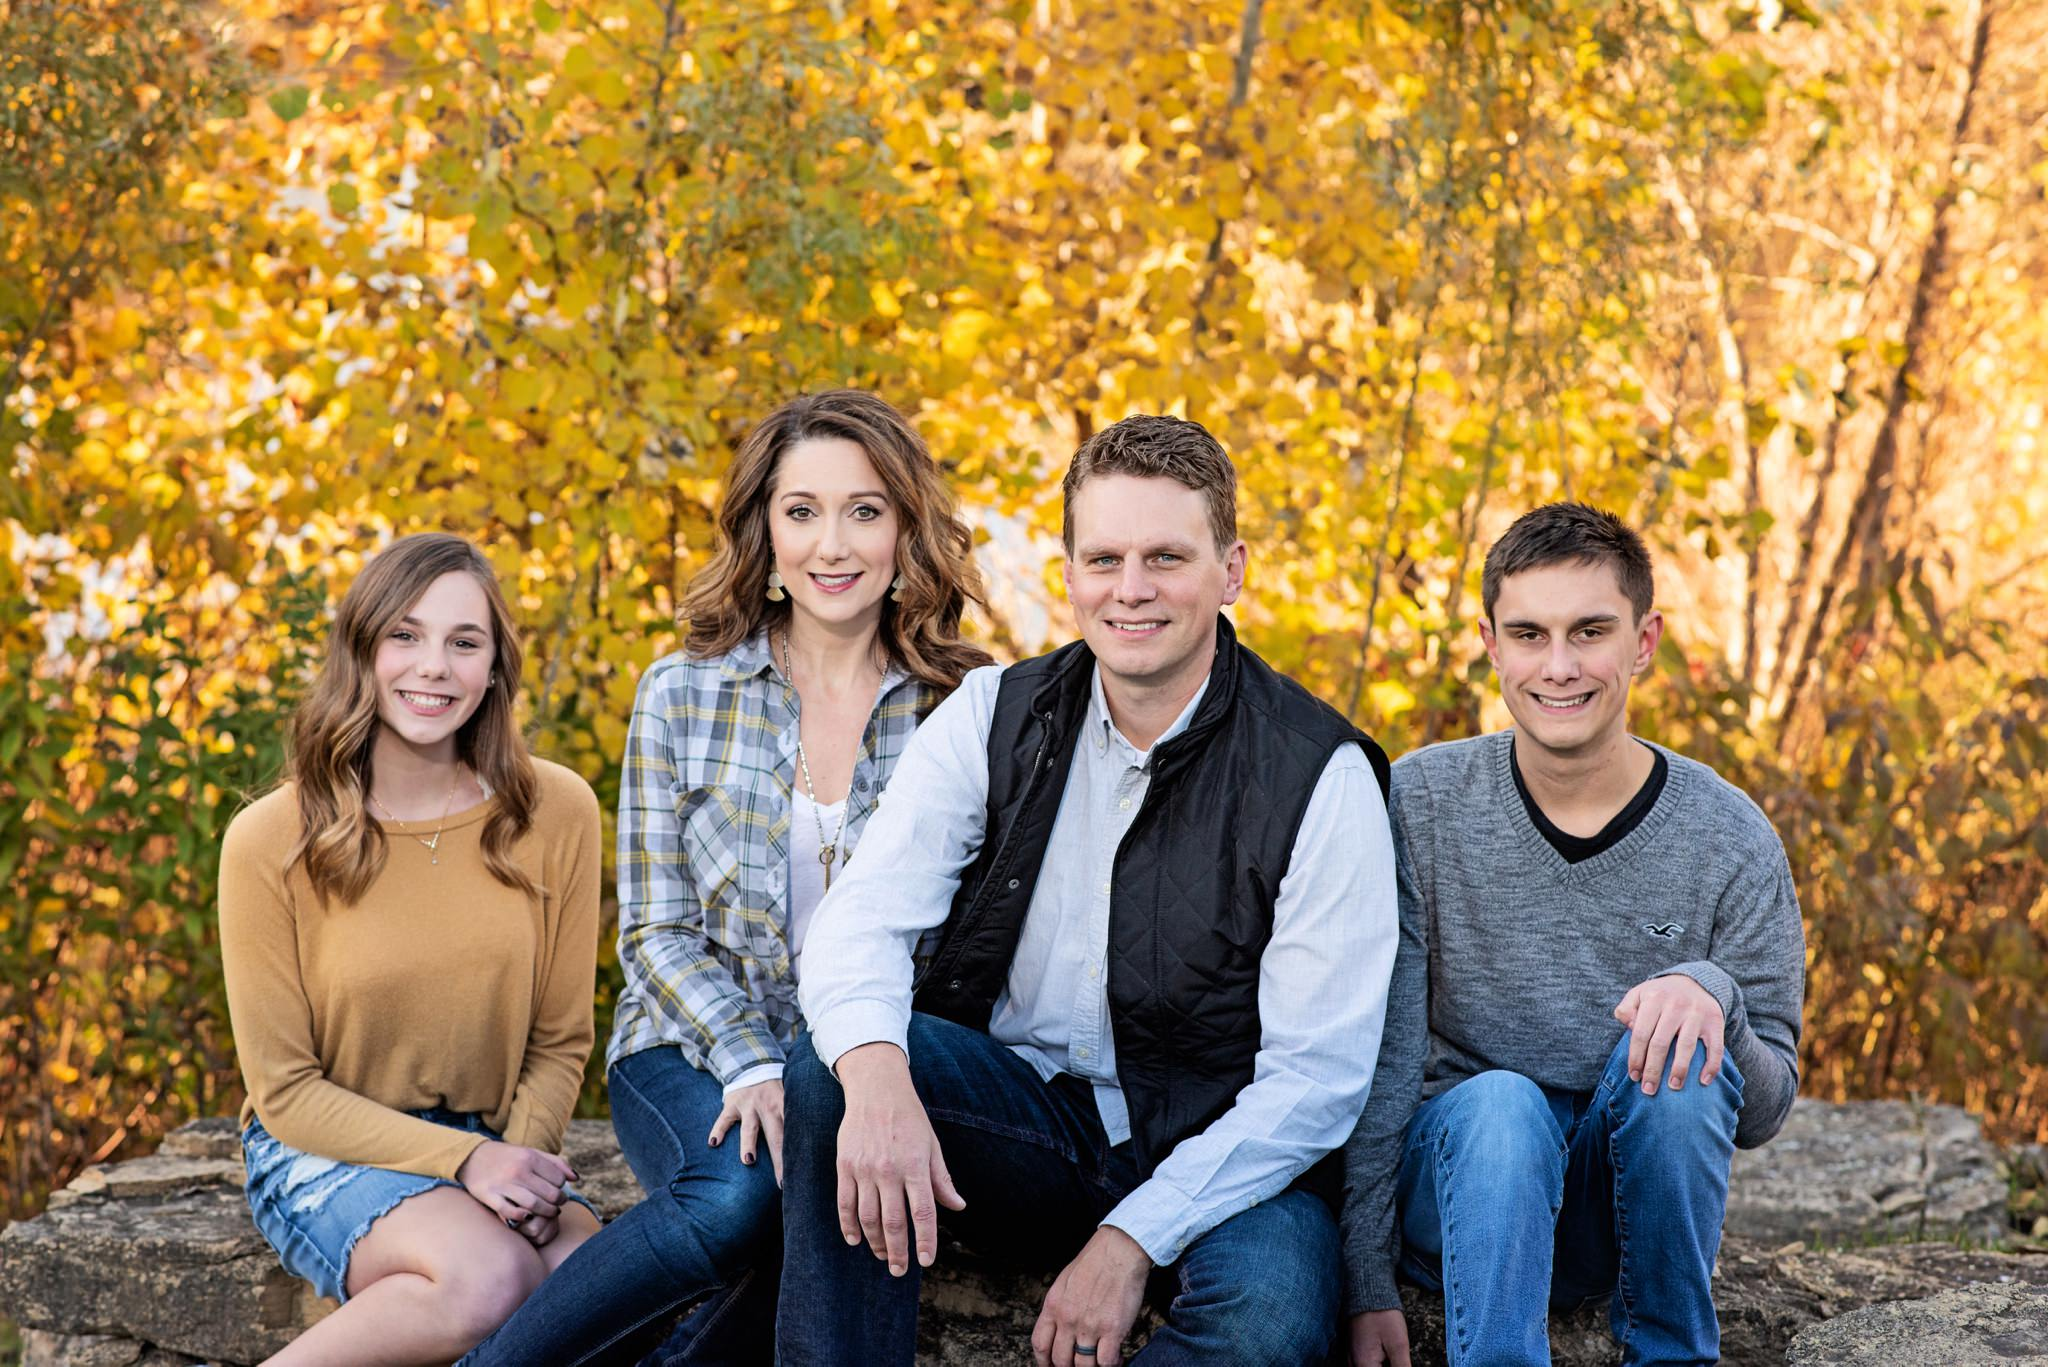 Wittwer-Family-Rotella-Photography-2018-23_WEB.jpg